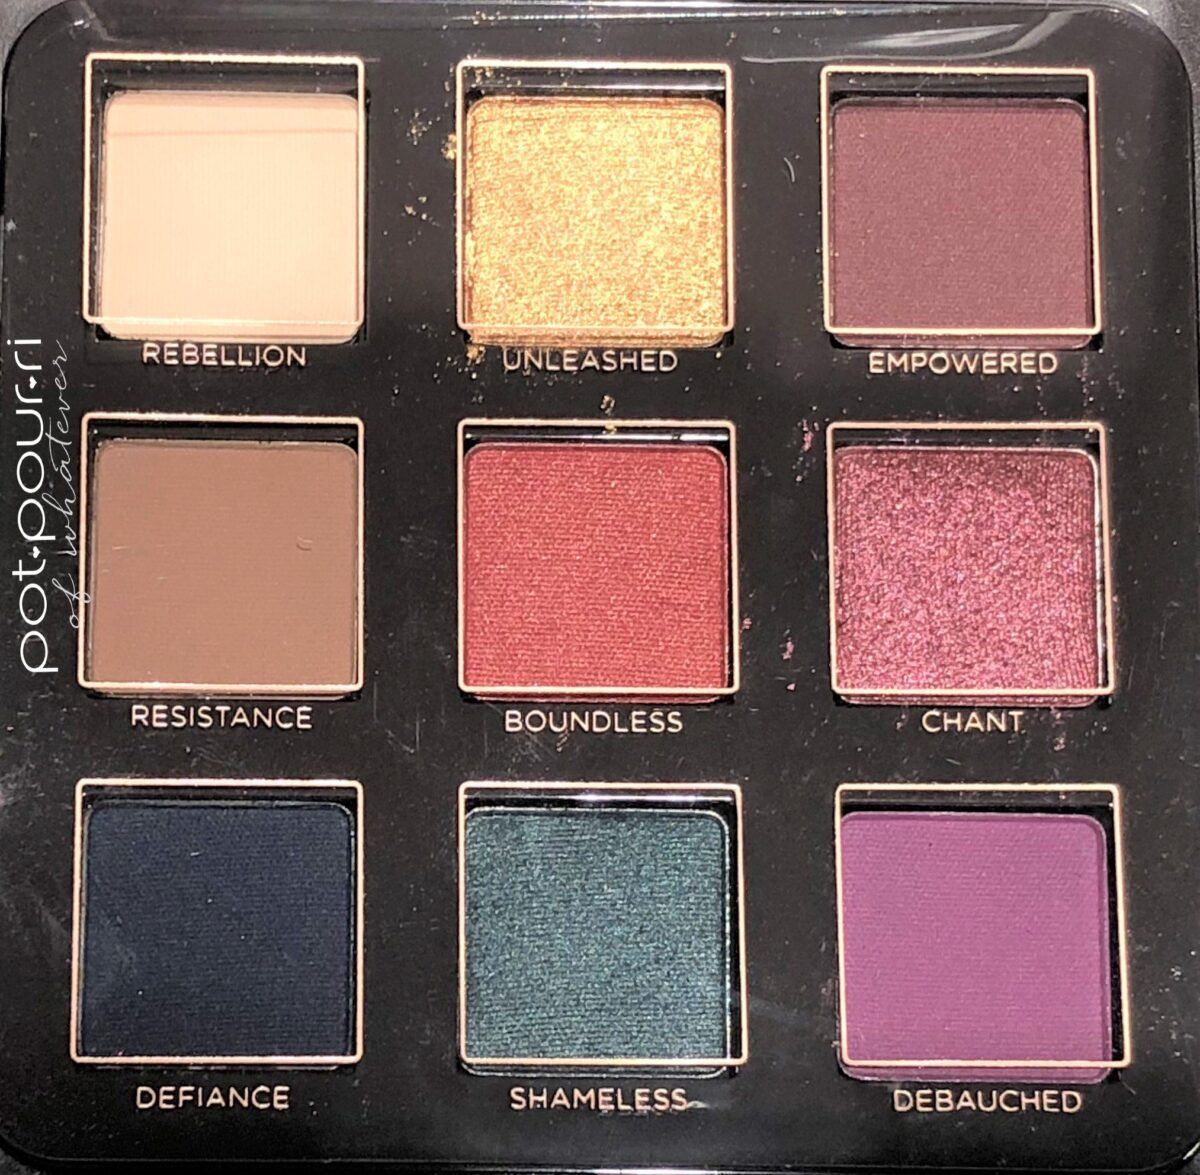 VISEART LIBERTINE EYE SHADOW PALETTE SHADES